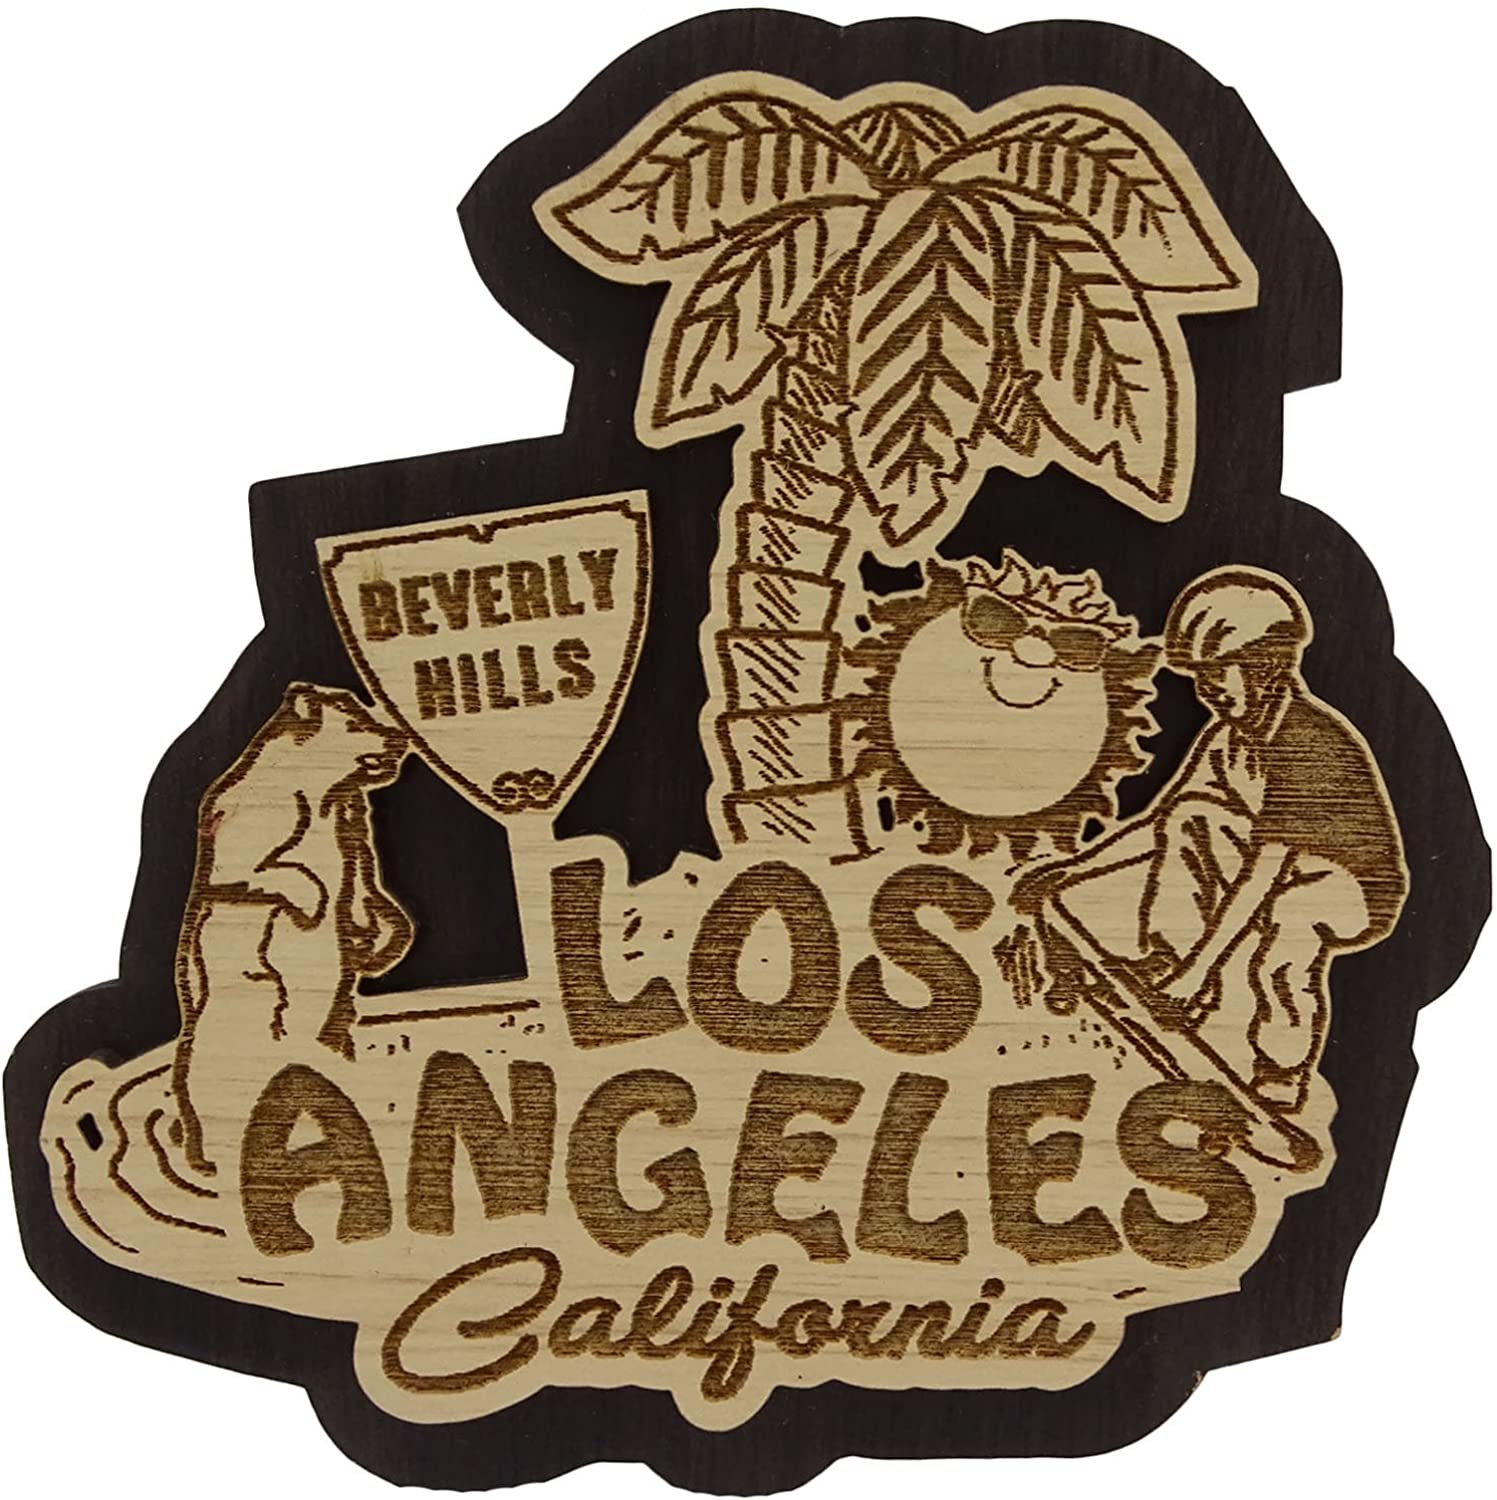 Los Angeles Wood Engraved Wooden Fridge Magnet Souvenir Gift